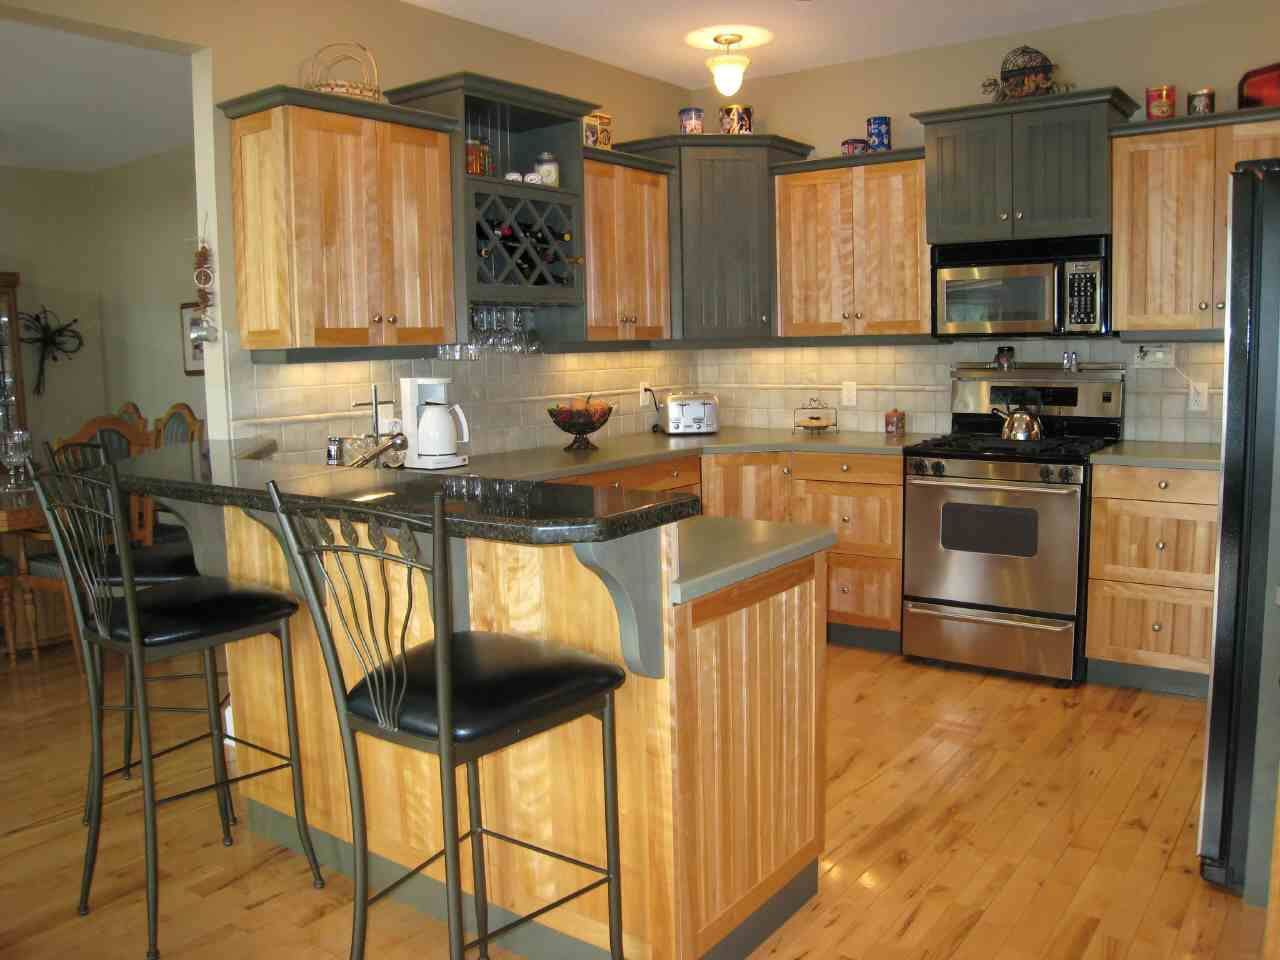 Kitchen decor ideas kitchen decorating pictures photos open shelves